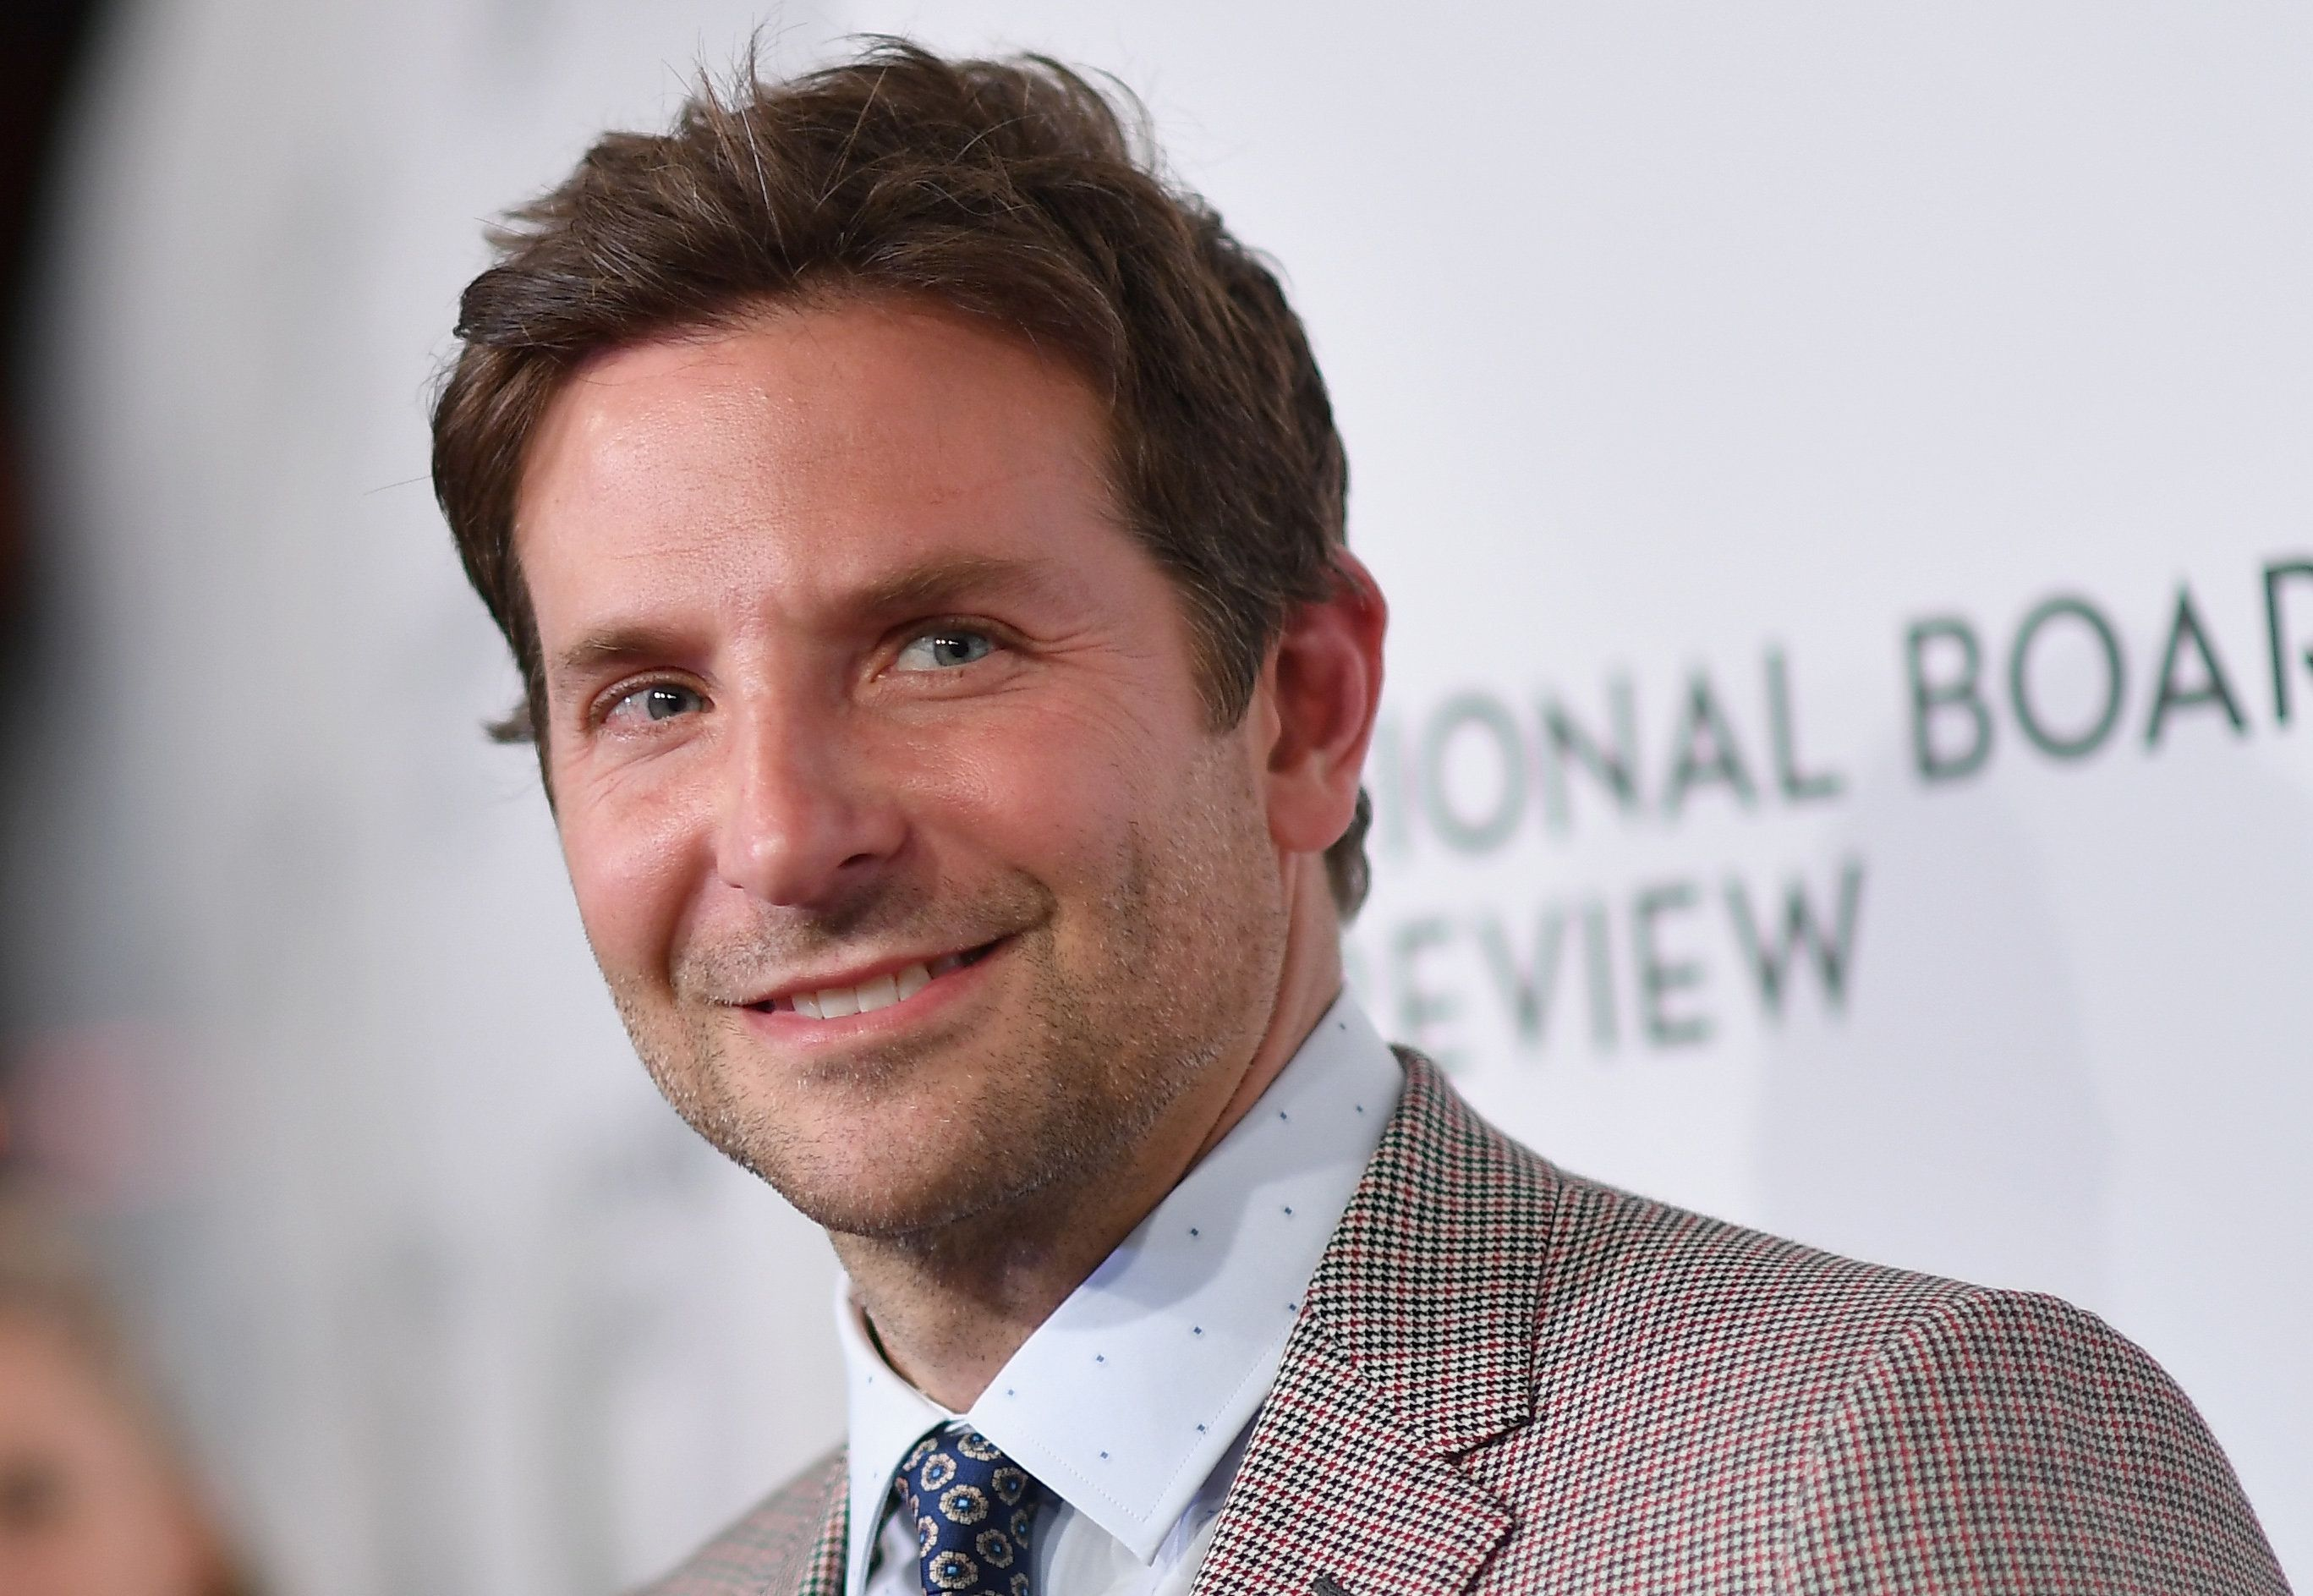 Actor/director Bradley Cooper attends the 2019 National Board Of Review Gala at Cipriani 42nd Street on January 08, 2019 in New York City. (Photo by Angela Weiss / AFP)        (Photo credit should read ANGELA WEISS/AFP/Getty Images)